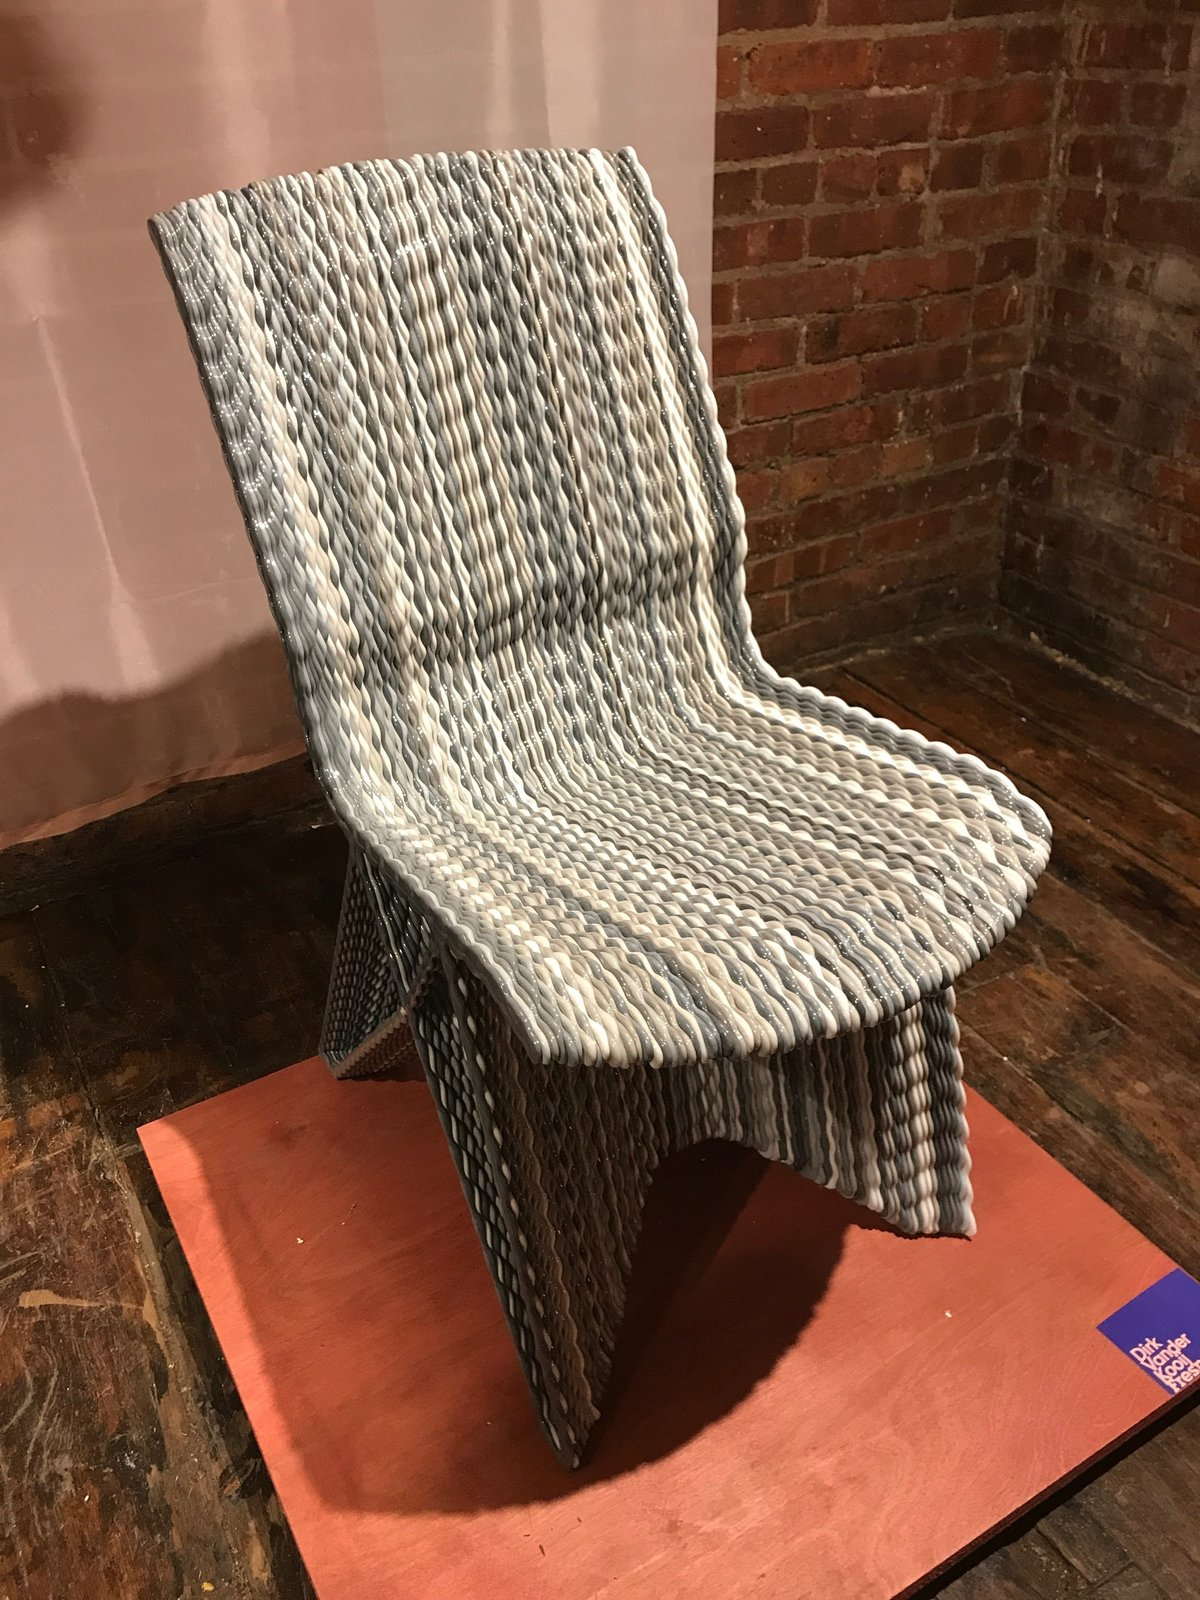 At Wanted, Dutch designer Dirk Van Der Kooij displayed his new 3D-printed chair made of recycled refrigerator plastic parts.  Photo 25 of 36 in The Best of New York Design Week 2017